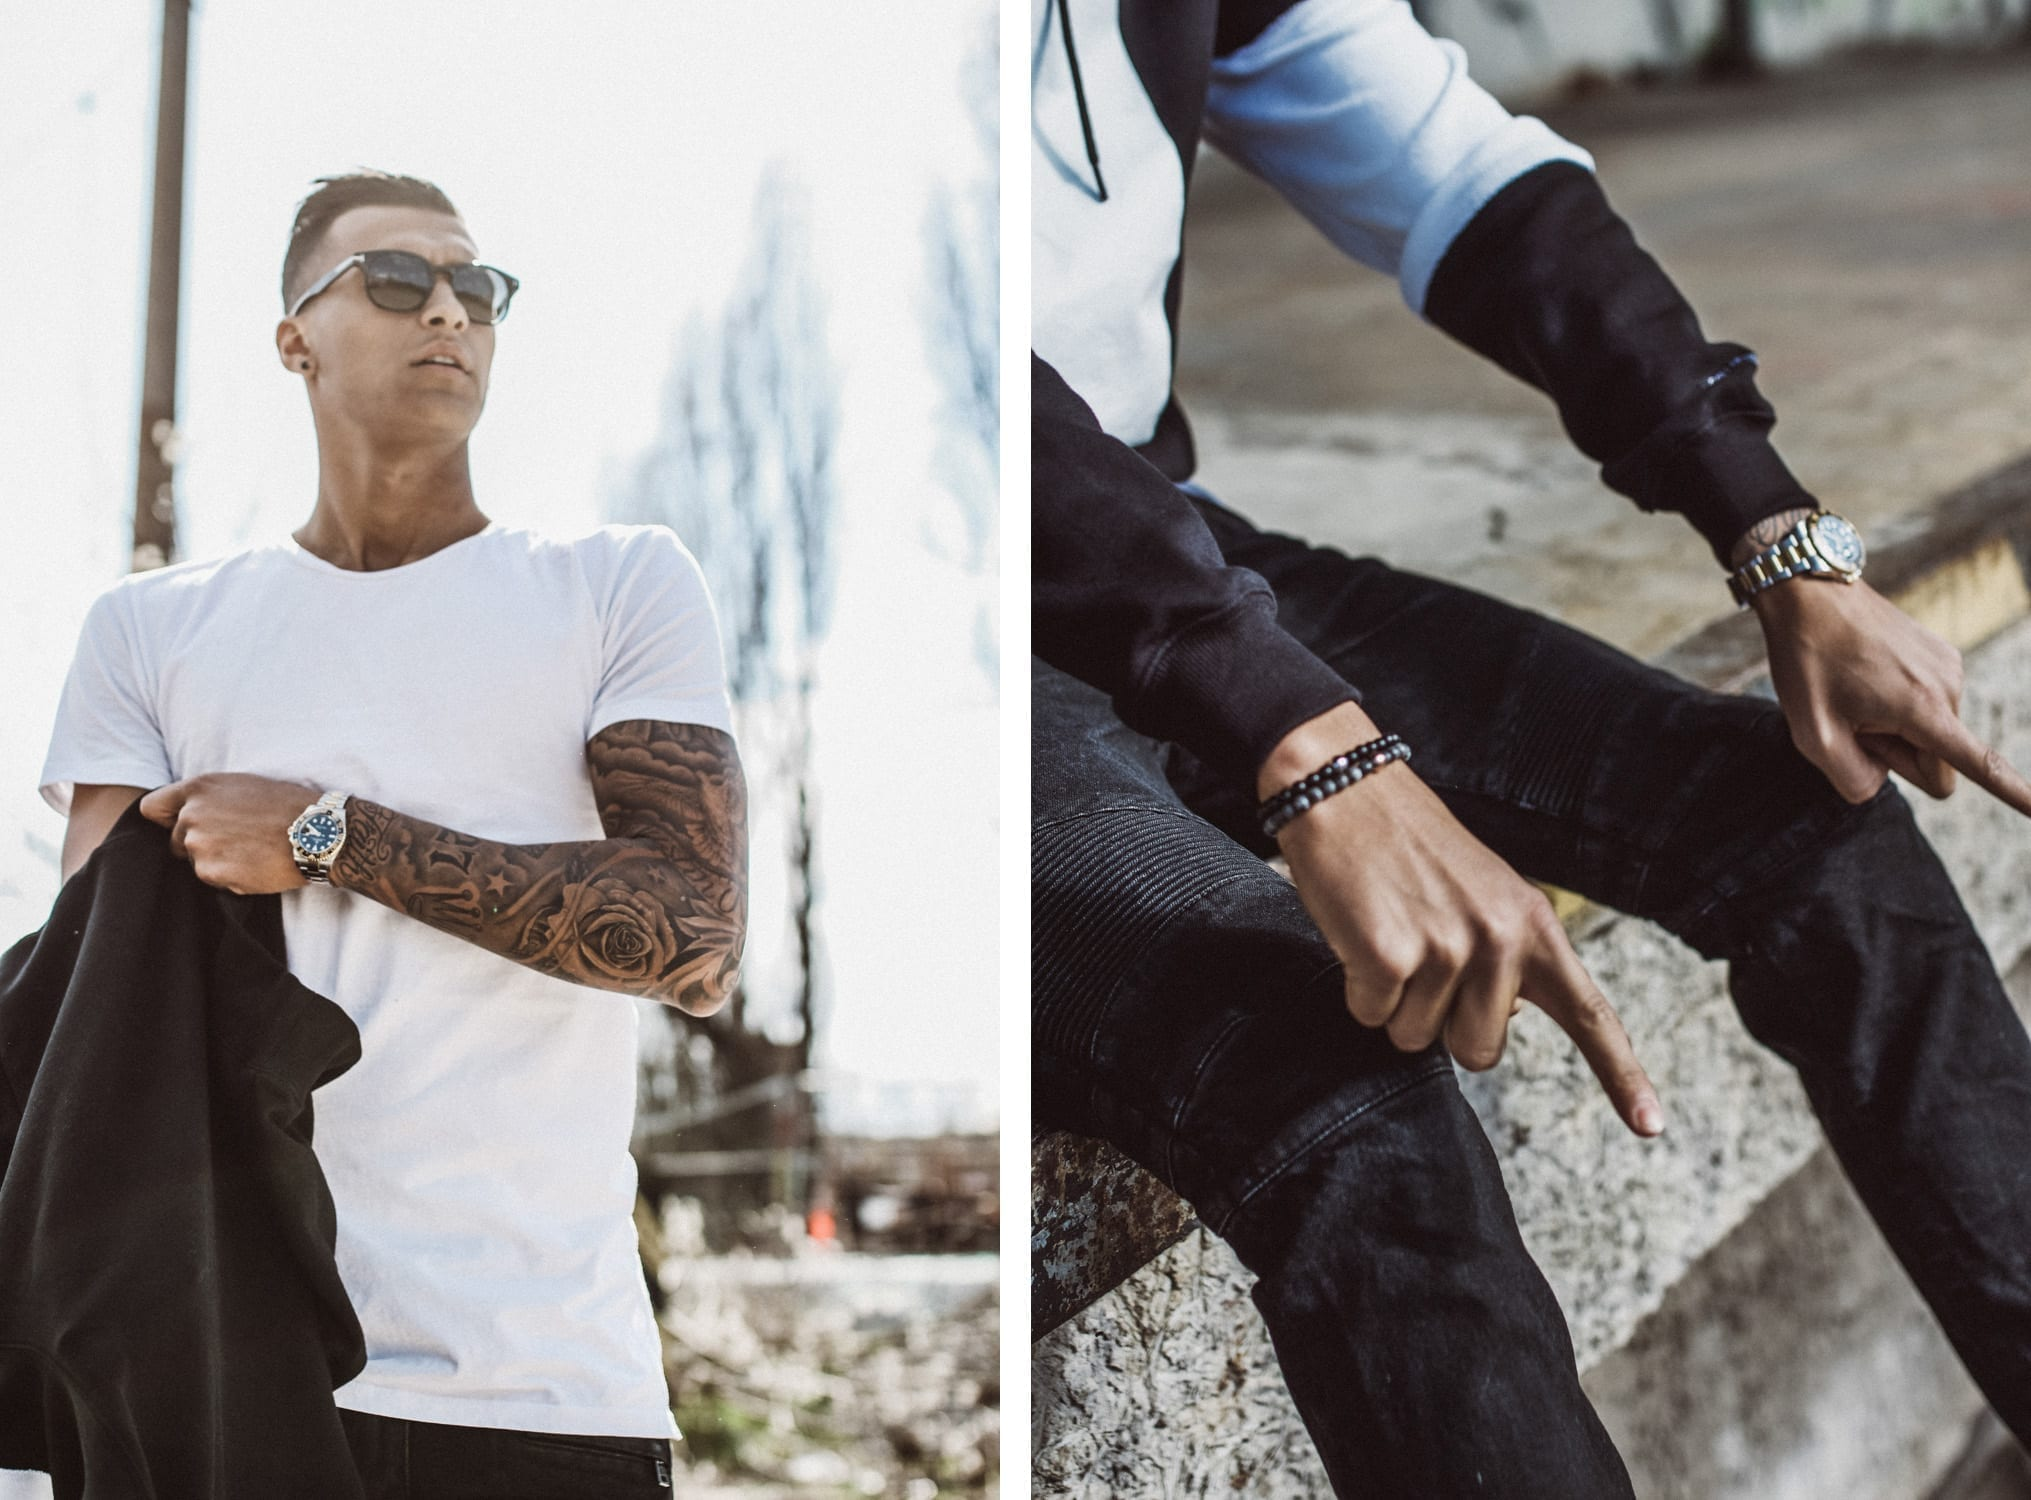 CK_1604_constantlyk_fashion-shooting-street-style-private-davie-selke-copyright-georg-teigl-5336 Kopie